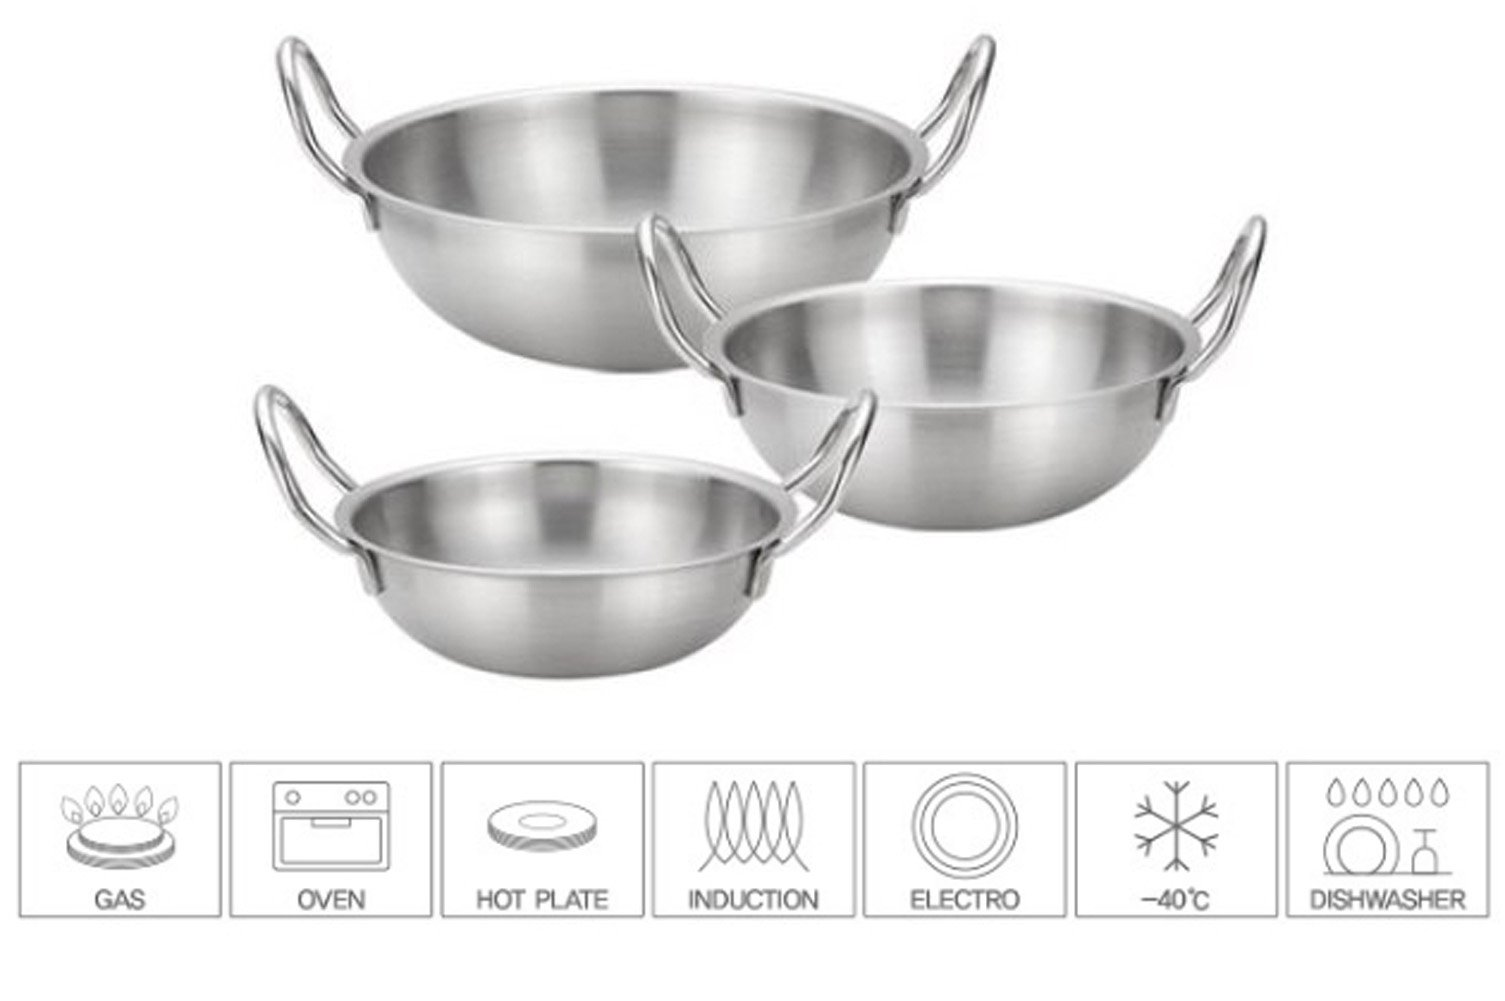 Bonito Stainless Steel 18-8 Stainless Steel Bowl Pot Set of 3 Salad Vegetable